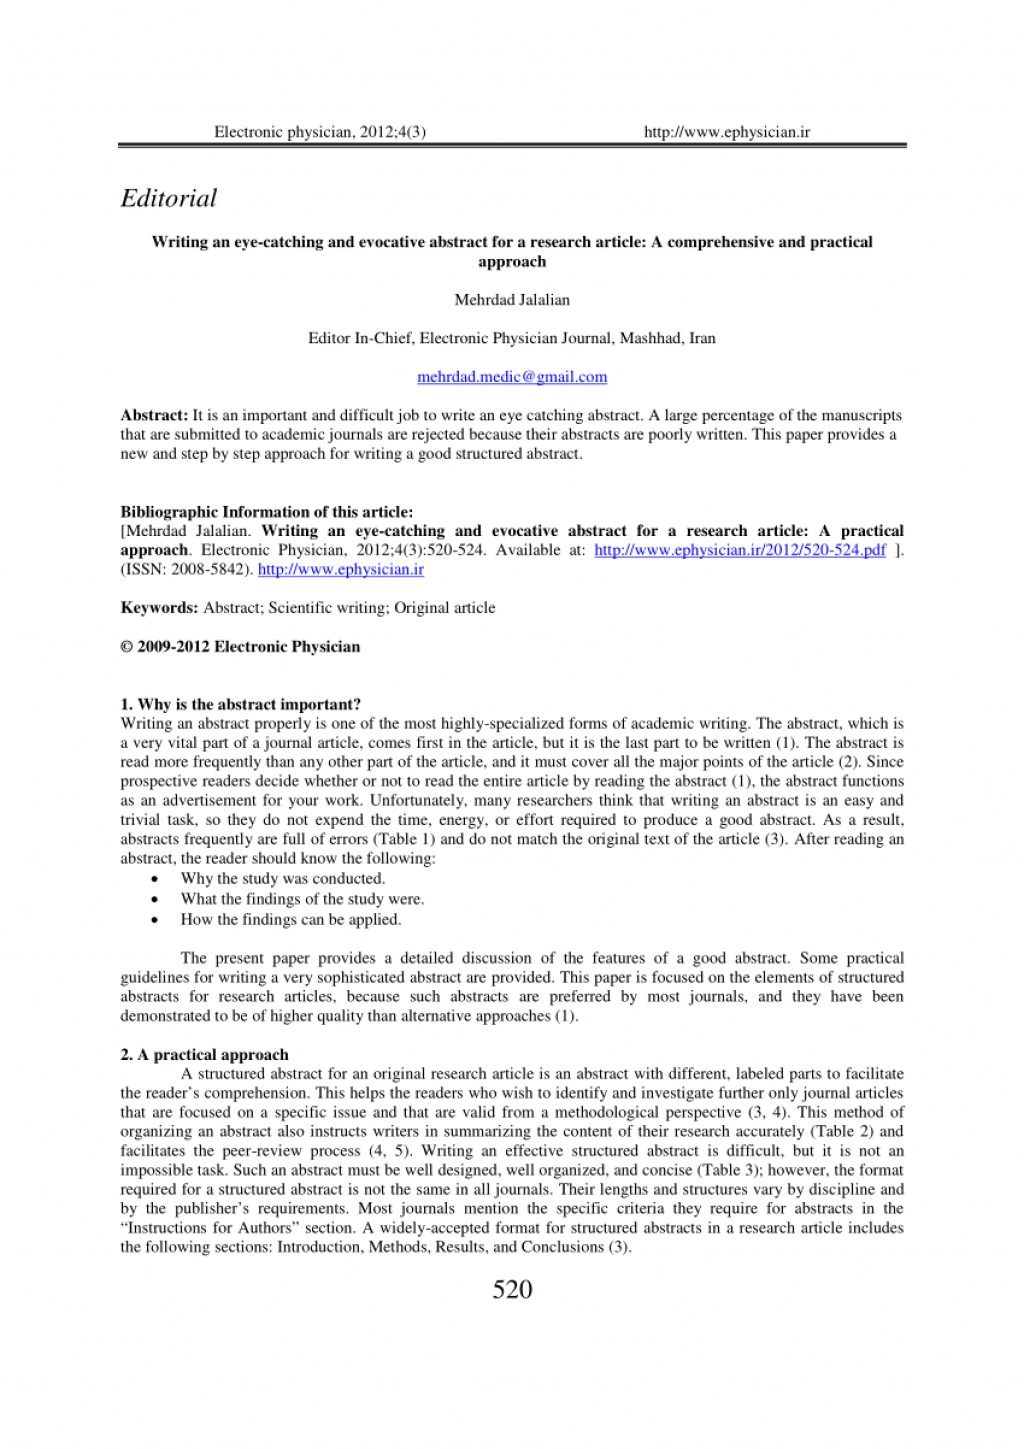 001 Research Paper How To Write An Effective Abstract For Pdf Phenomenal A Large